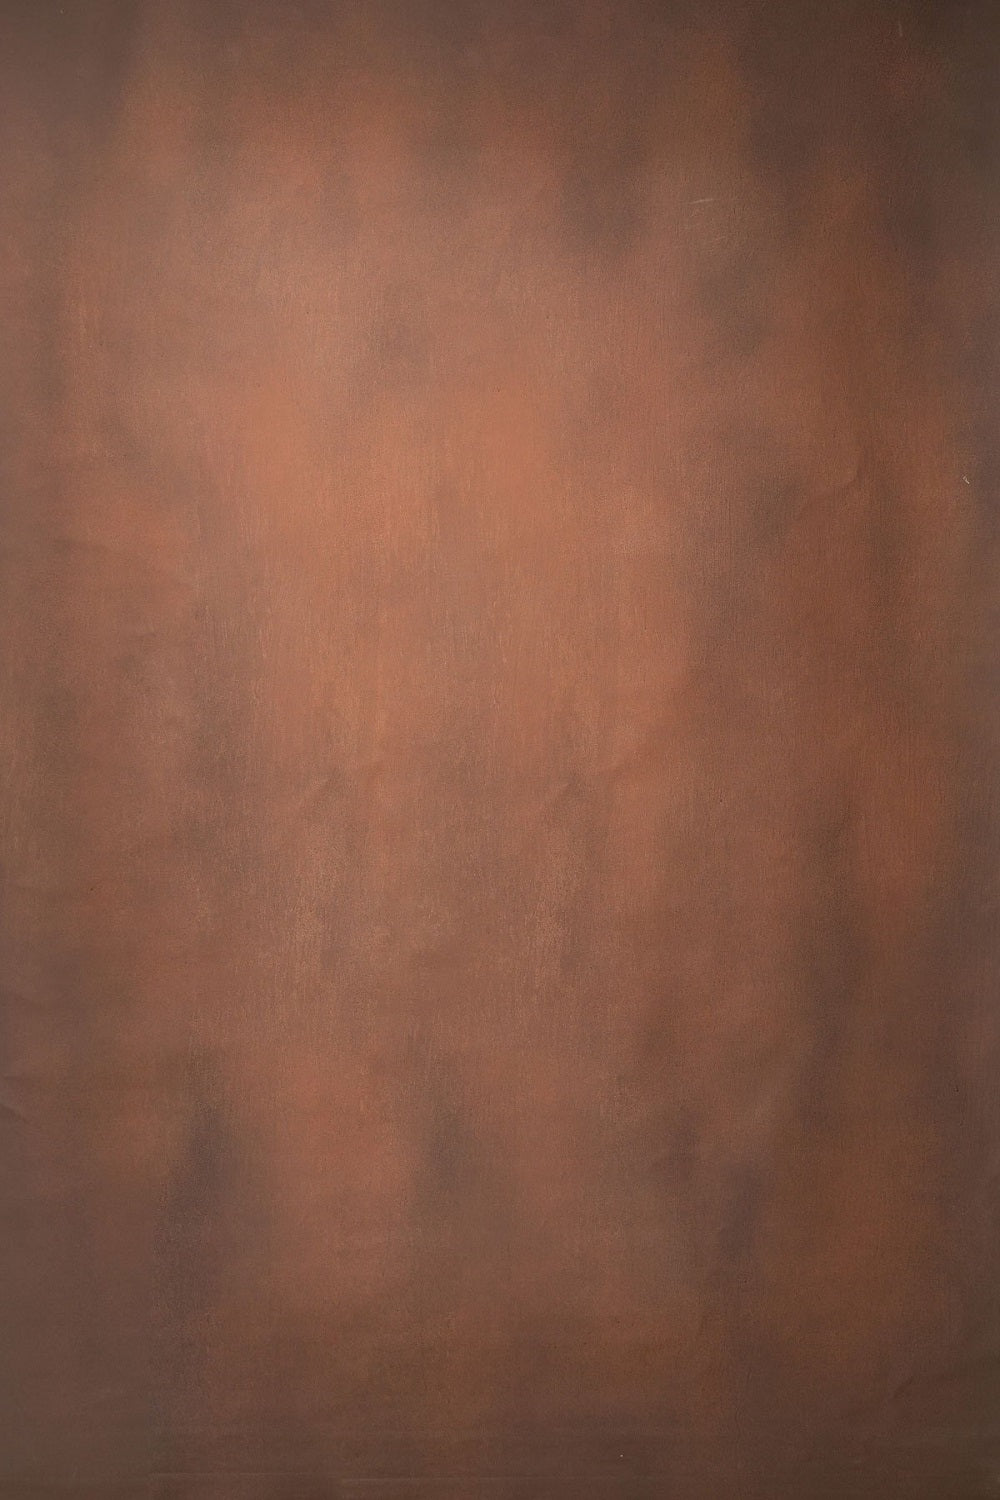 Abstract Dark Brown Light Orange color Textured Hand Painted Canvas #clot54